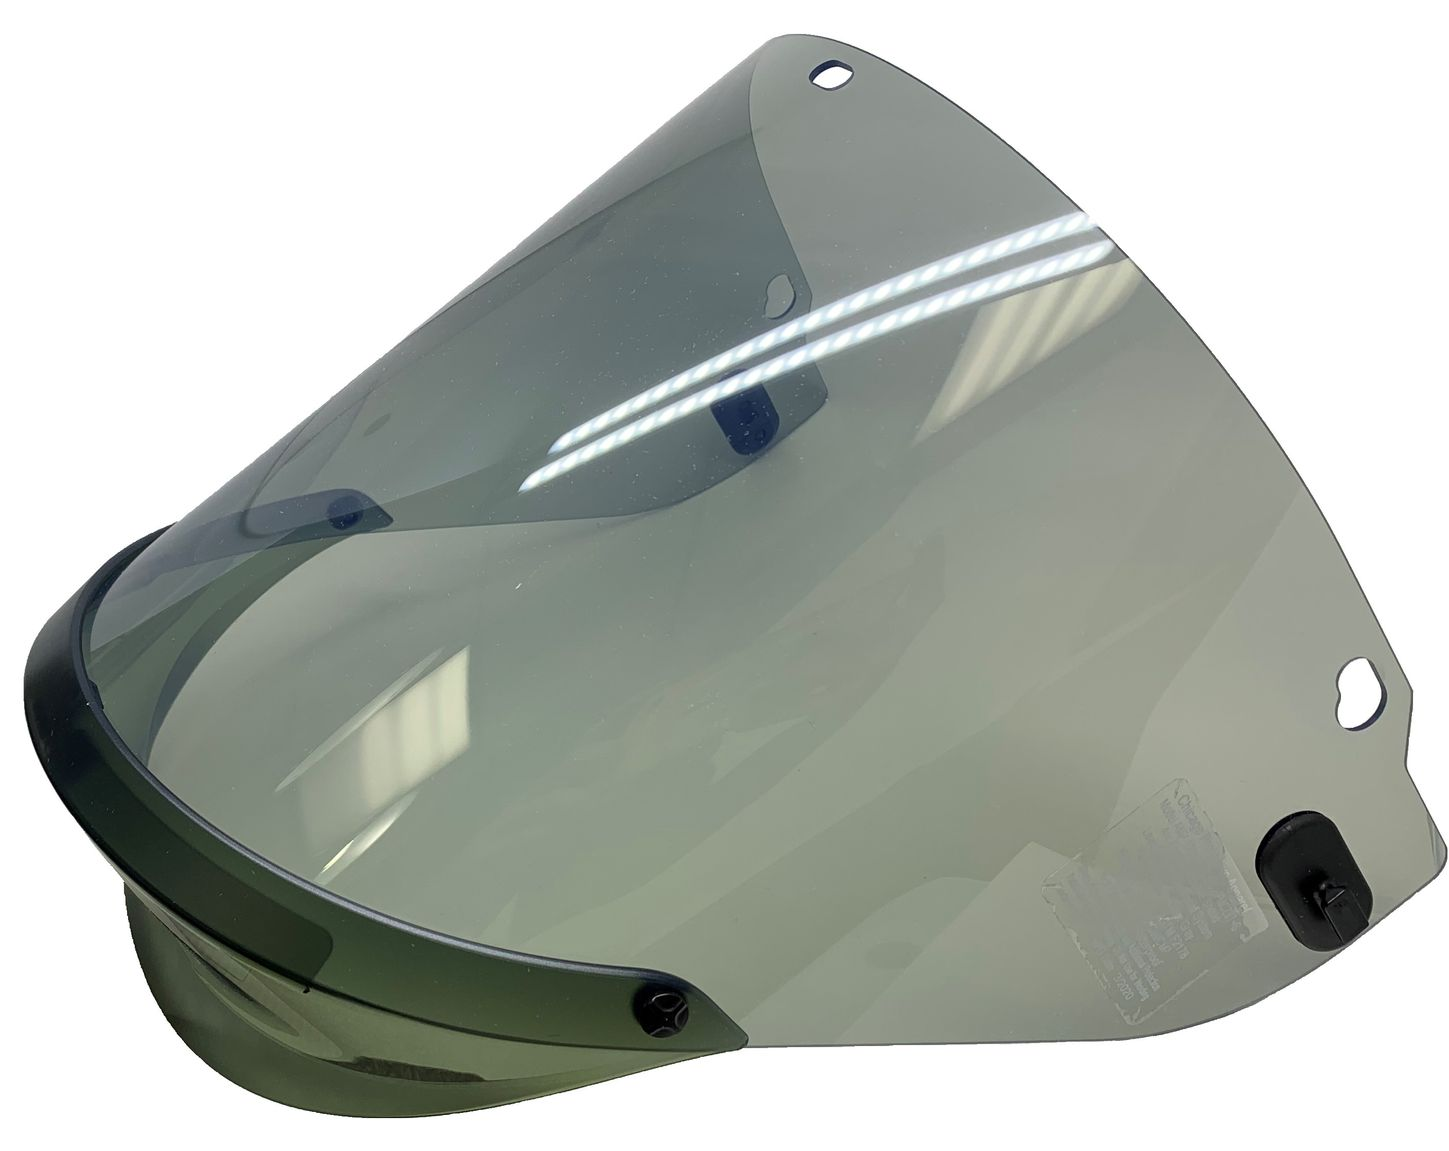 chicago-protective-apparel-replacement-visors-for-face-shields-wv-arc-12-grey-left.jpg